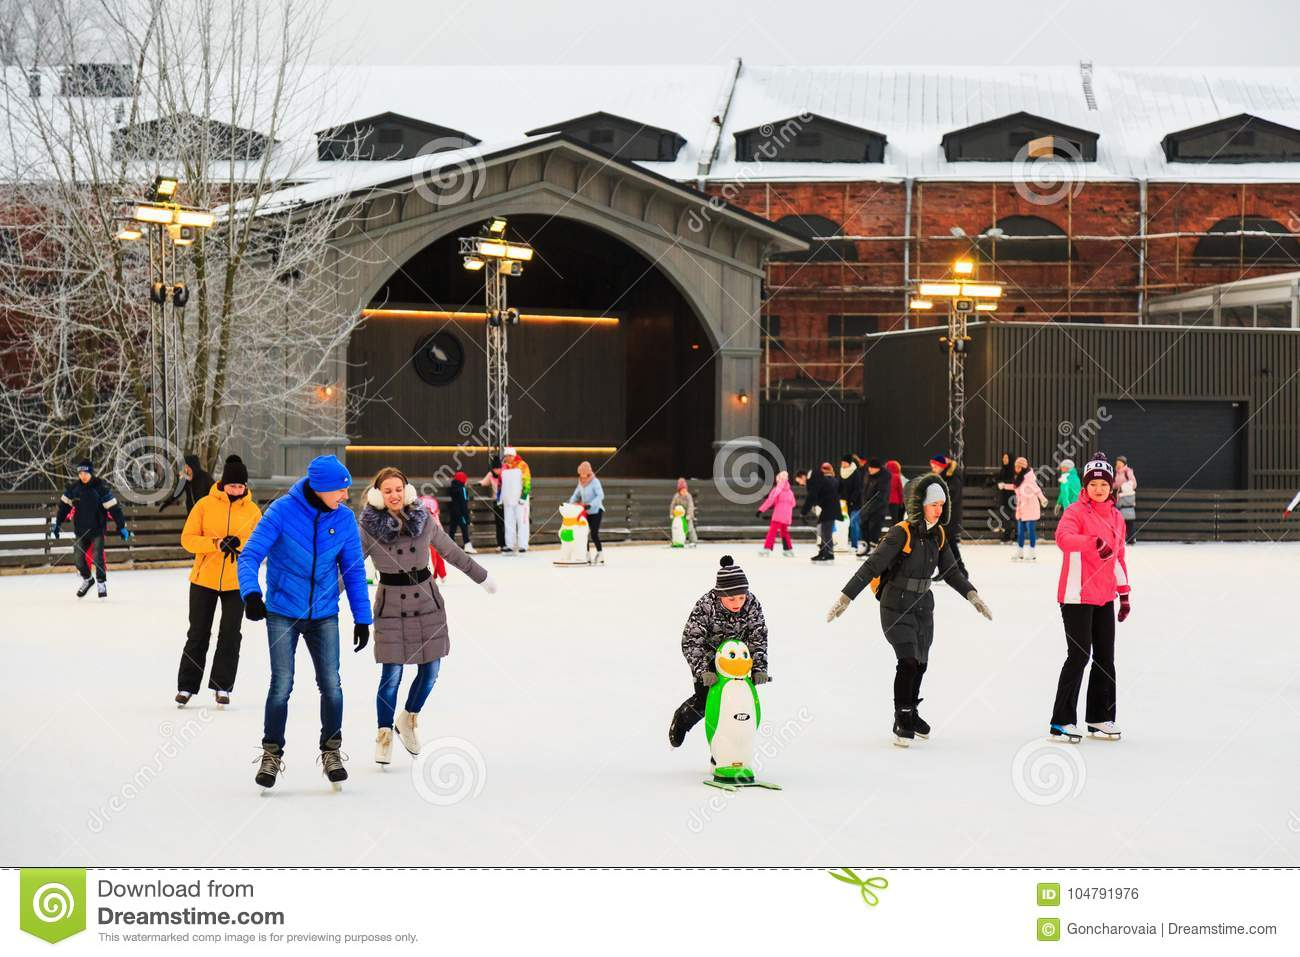 St. Petersburg, Russia -February 11, 2017: Ice skating rink in city at winter. People learning to skate. New Holland Island.